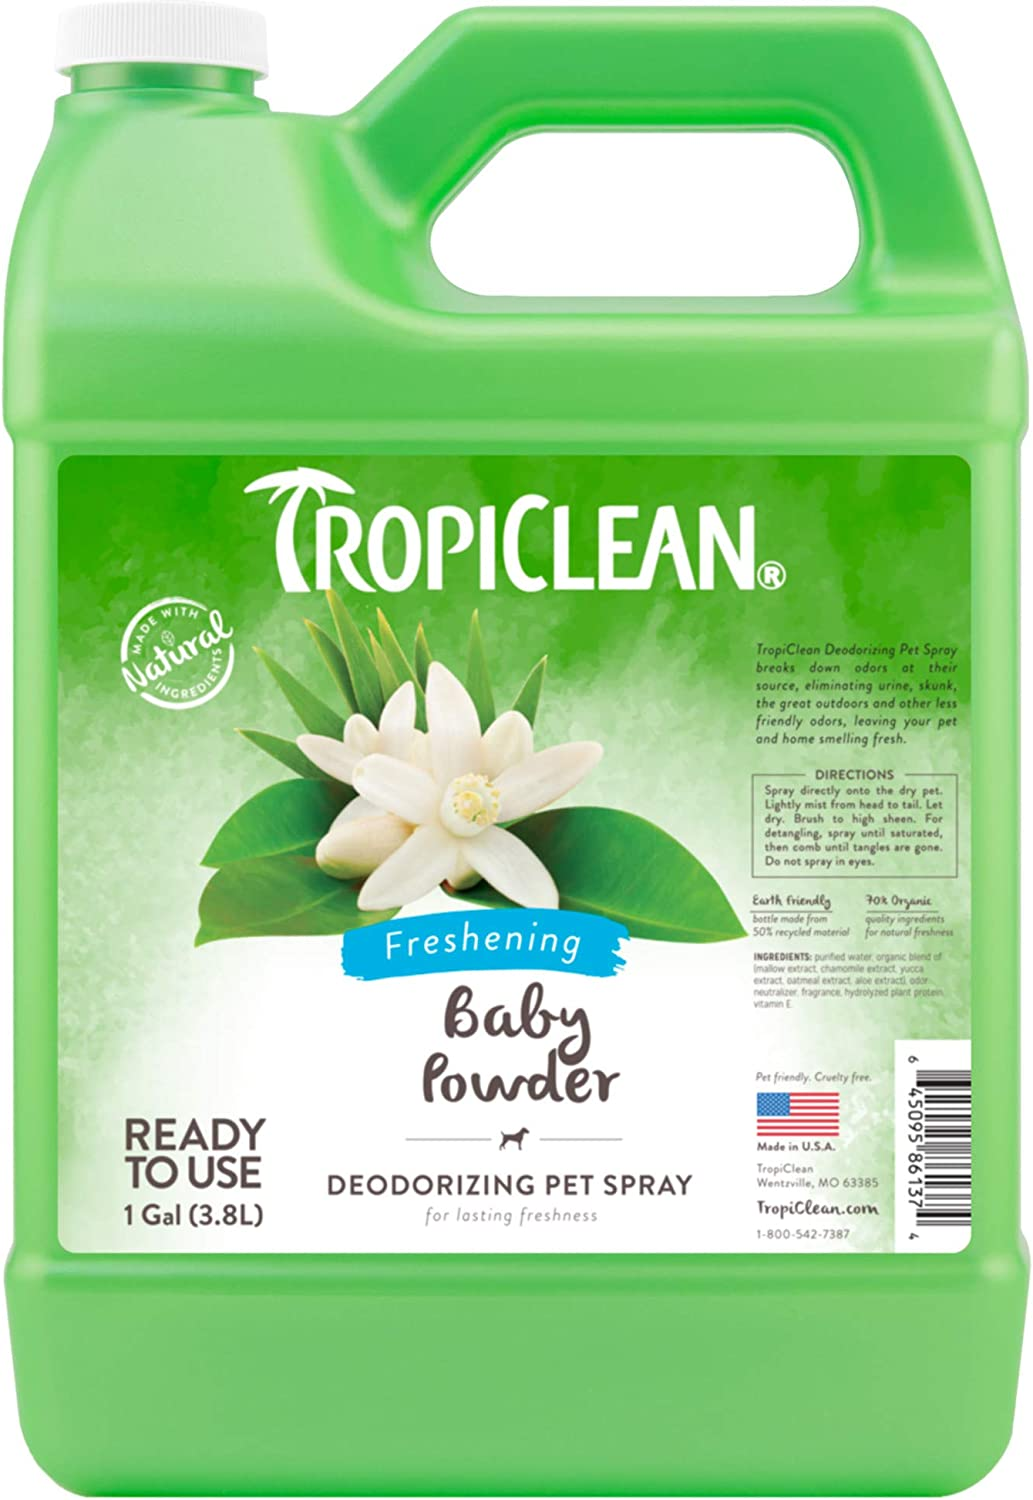 TropiClean Deodorizing Sprays for Pets, Made in USA - Helps Break Down Odors to Effectively Deodorize Dogs and Cats, Paraben Free, Dye Free